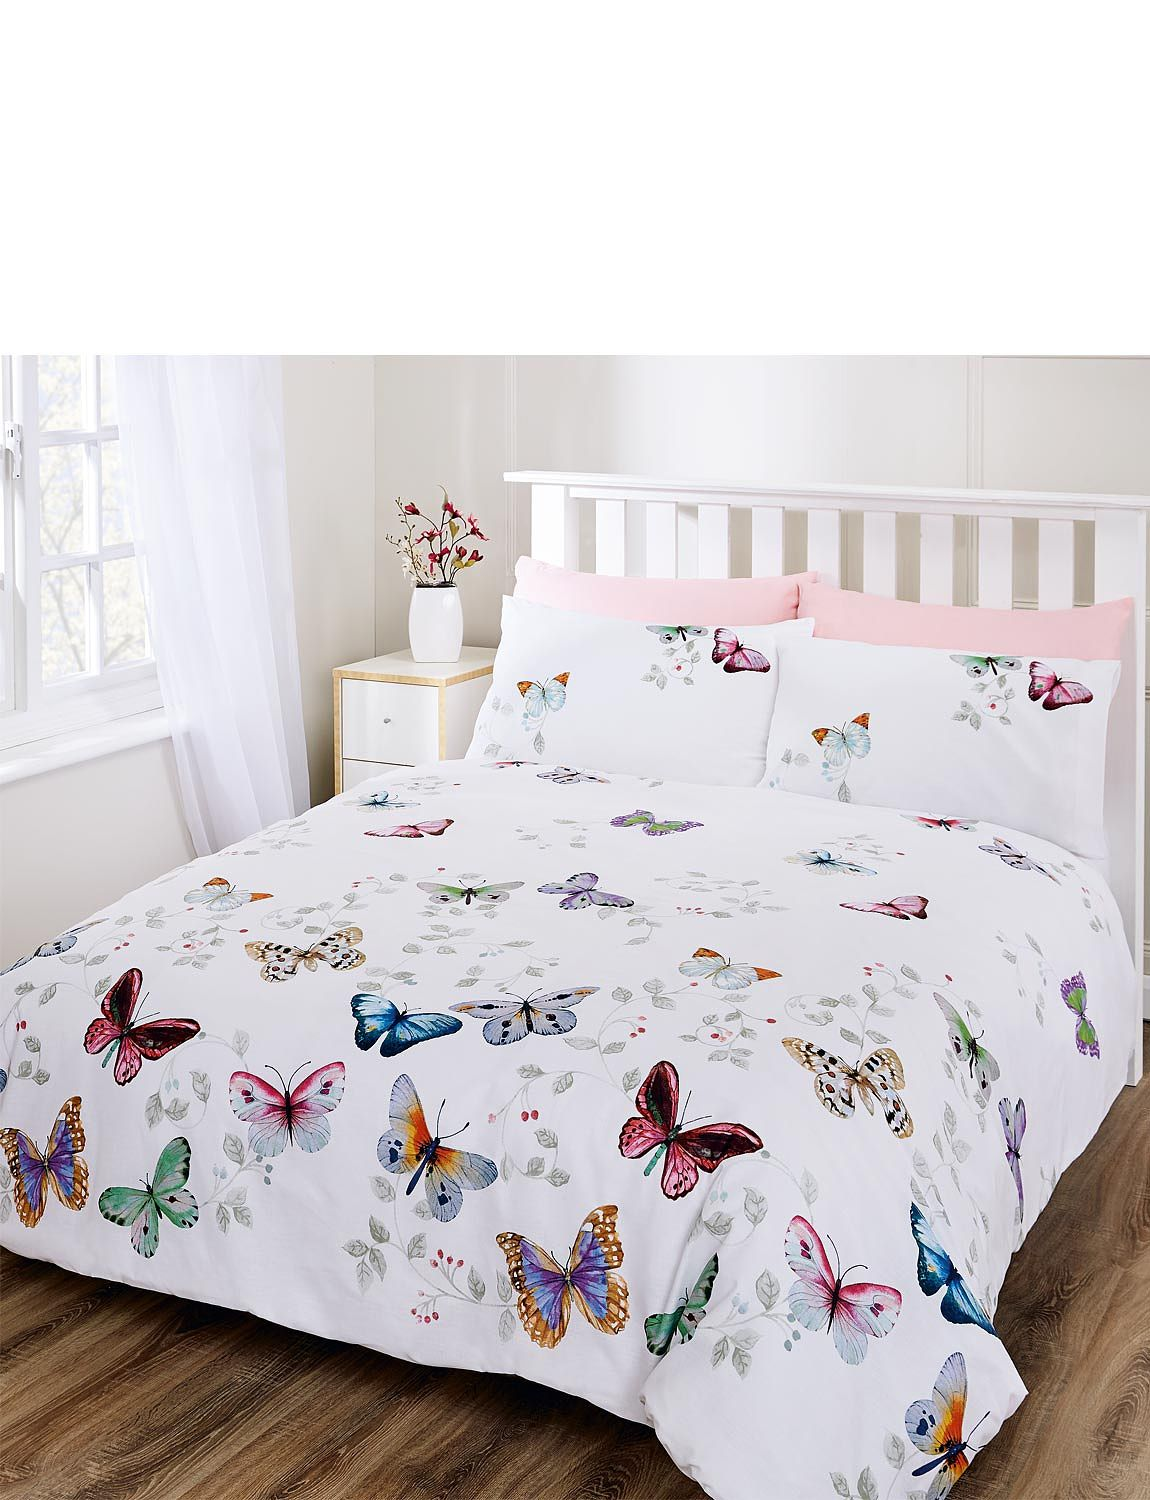 Butterfly Collection Designer Bed Sheets Kids Bed Linen Pretty Bedding